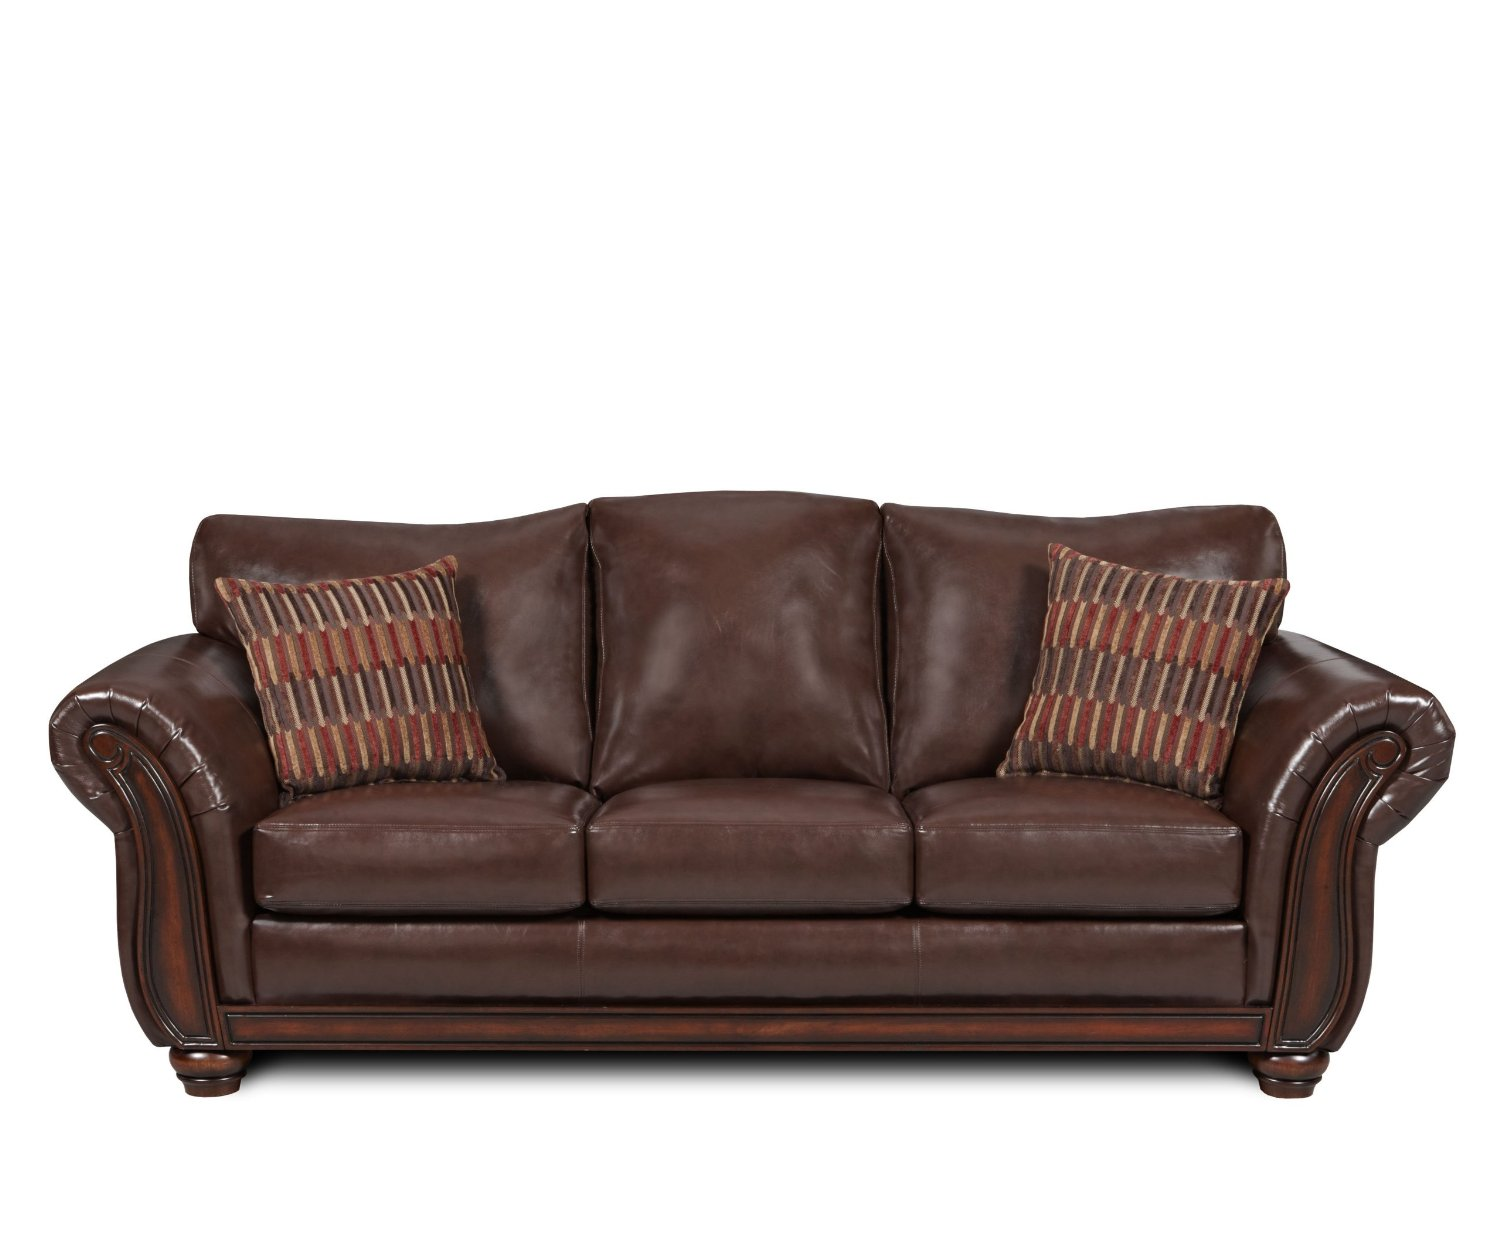 Leather Couch Furniture Guide Leather Sofaorg : Couch 5 from www.leather-sofa.org size 1500 x 1250 jpeg 123kB